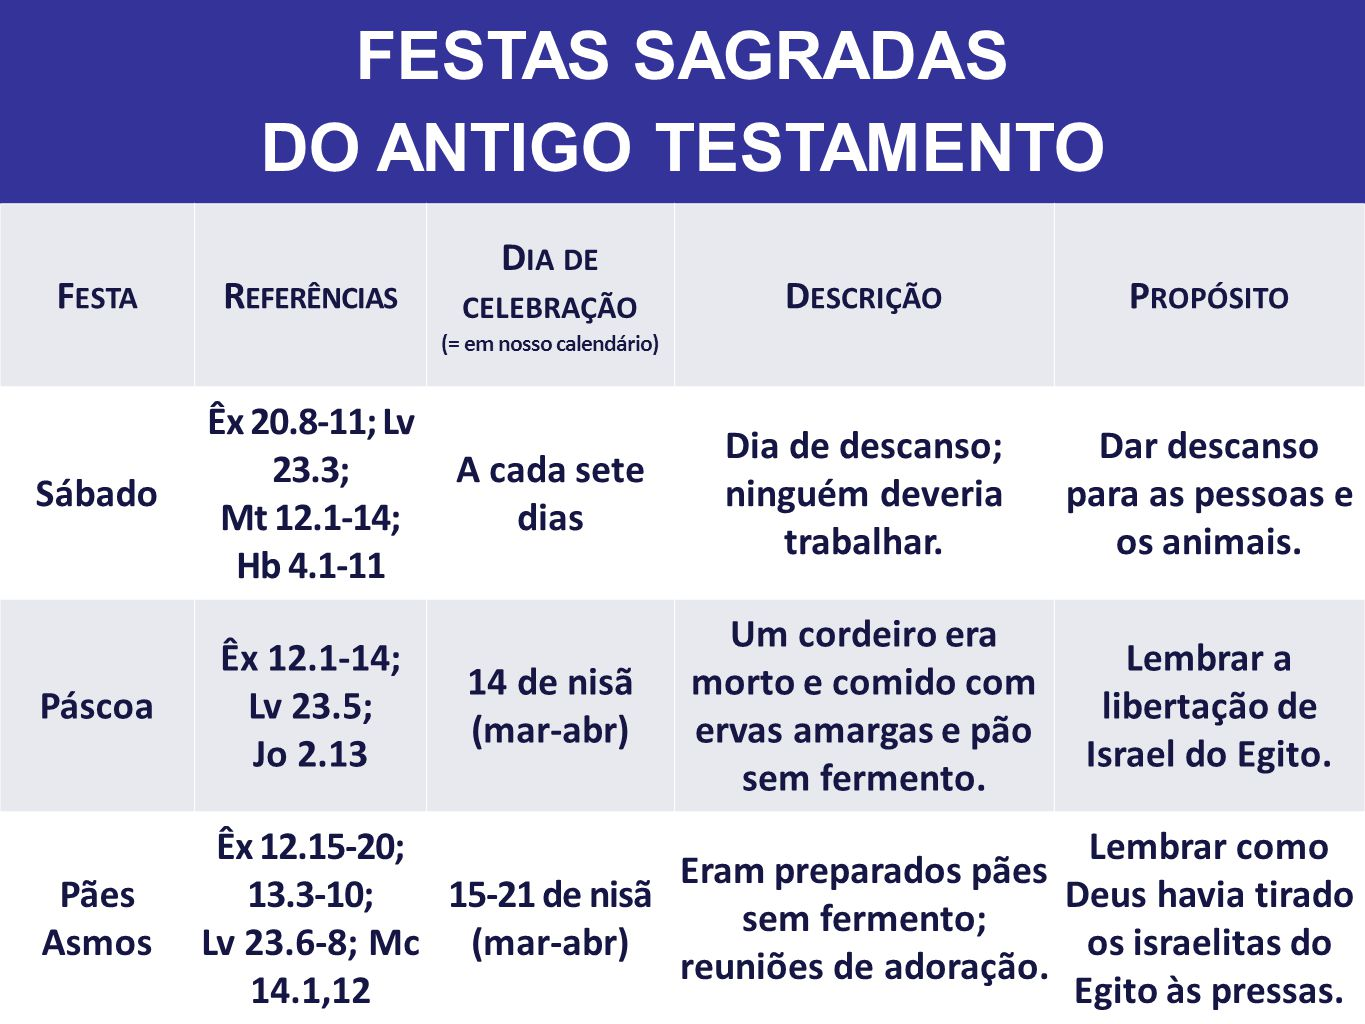 Festas sagradas do Antigo Testamento